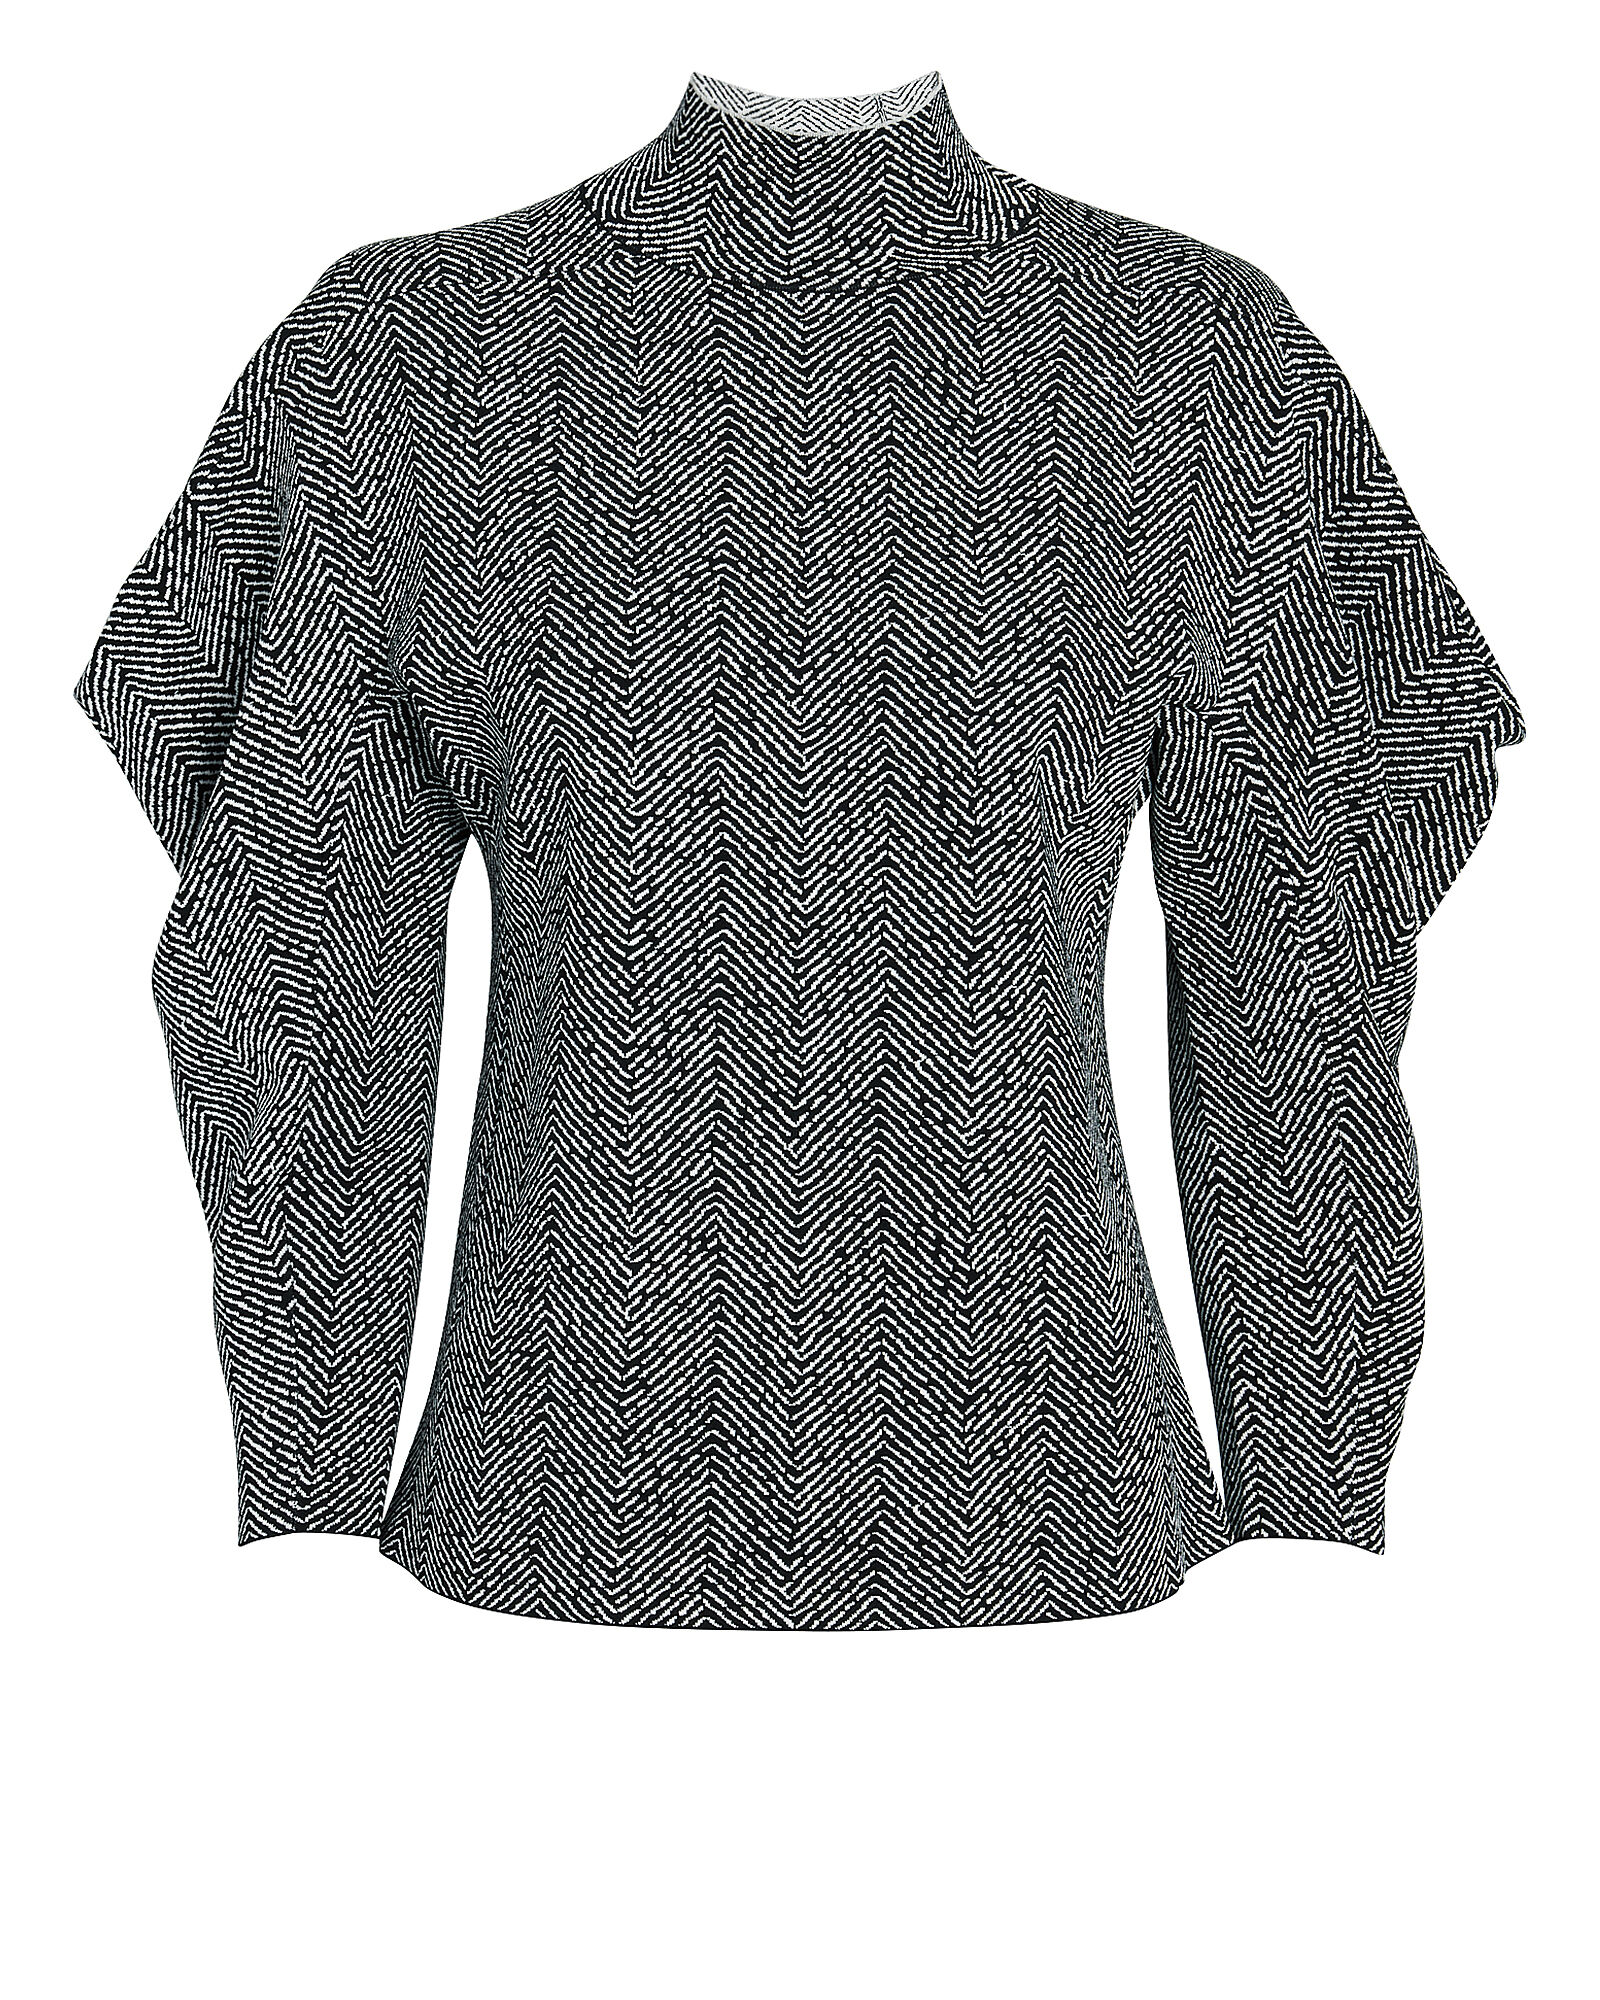 Chevron Jacquard Turtleneck Top, BLK/WHT, hi-res